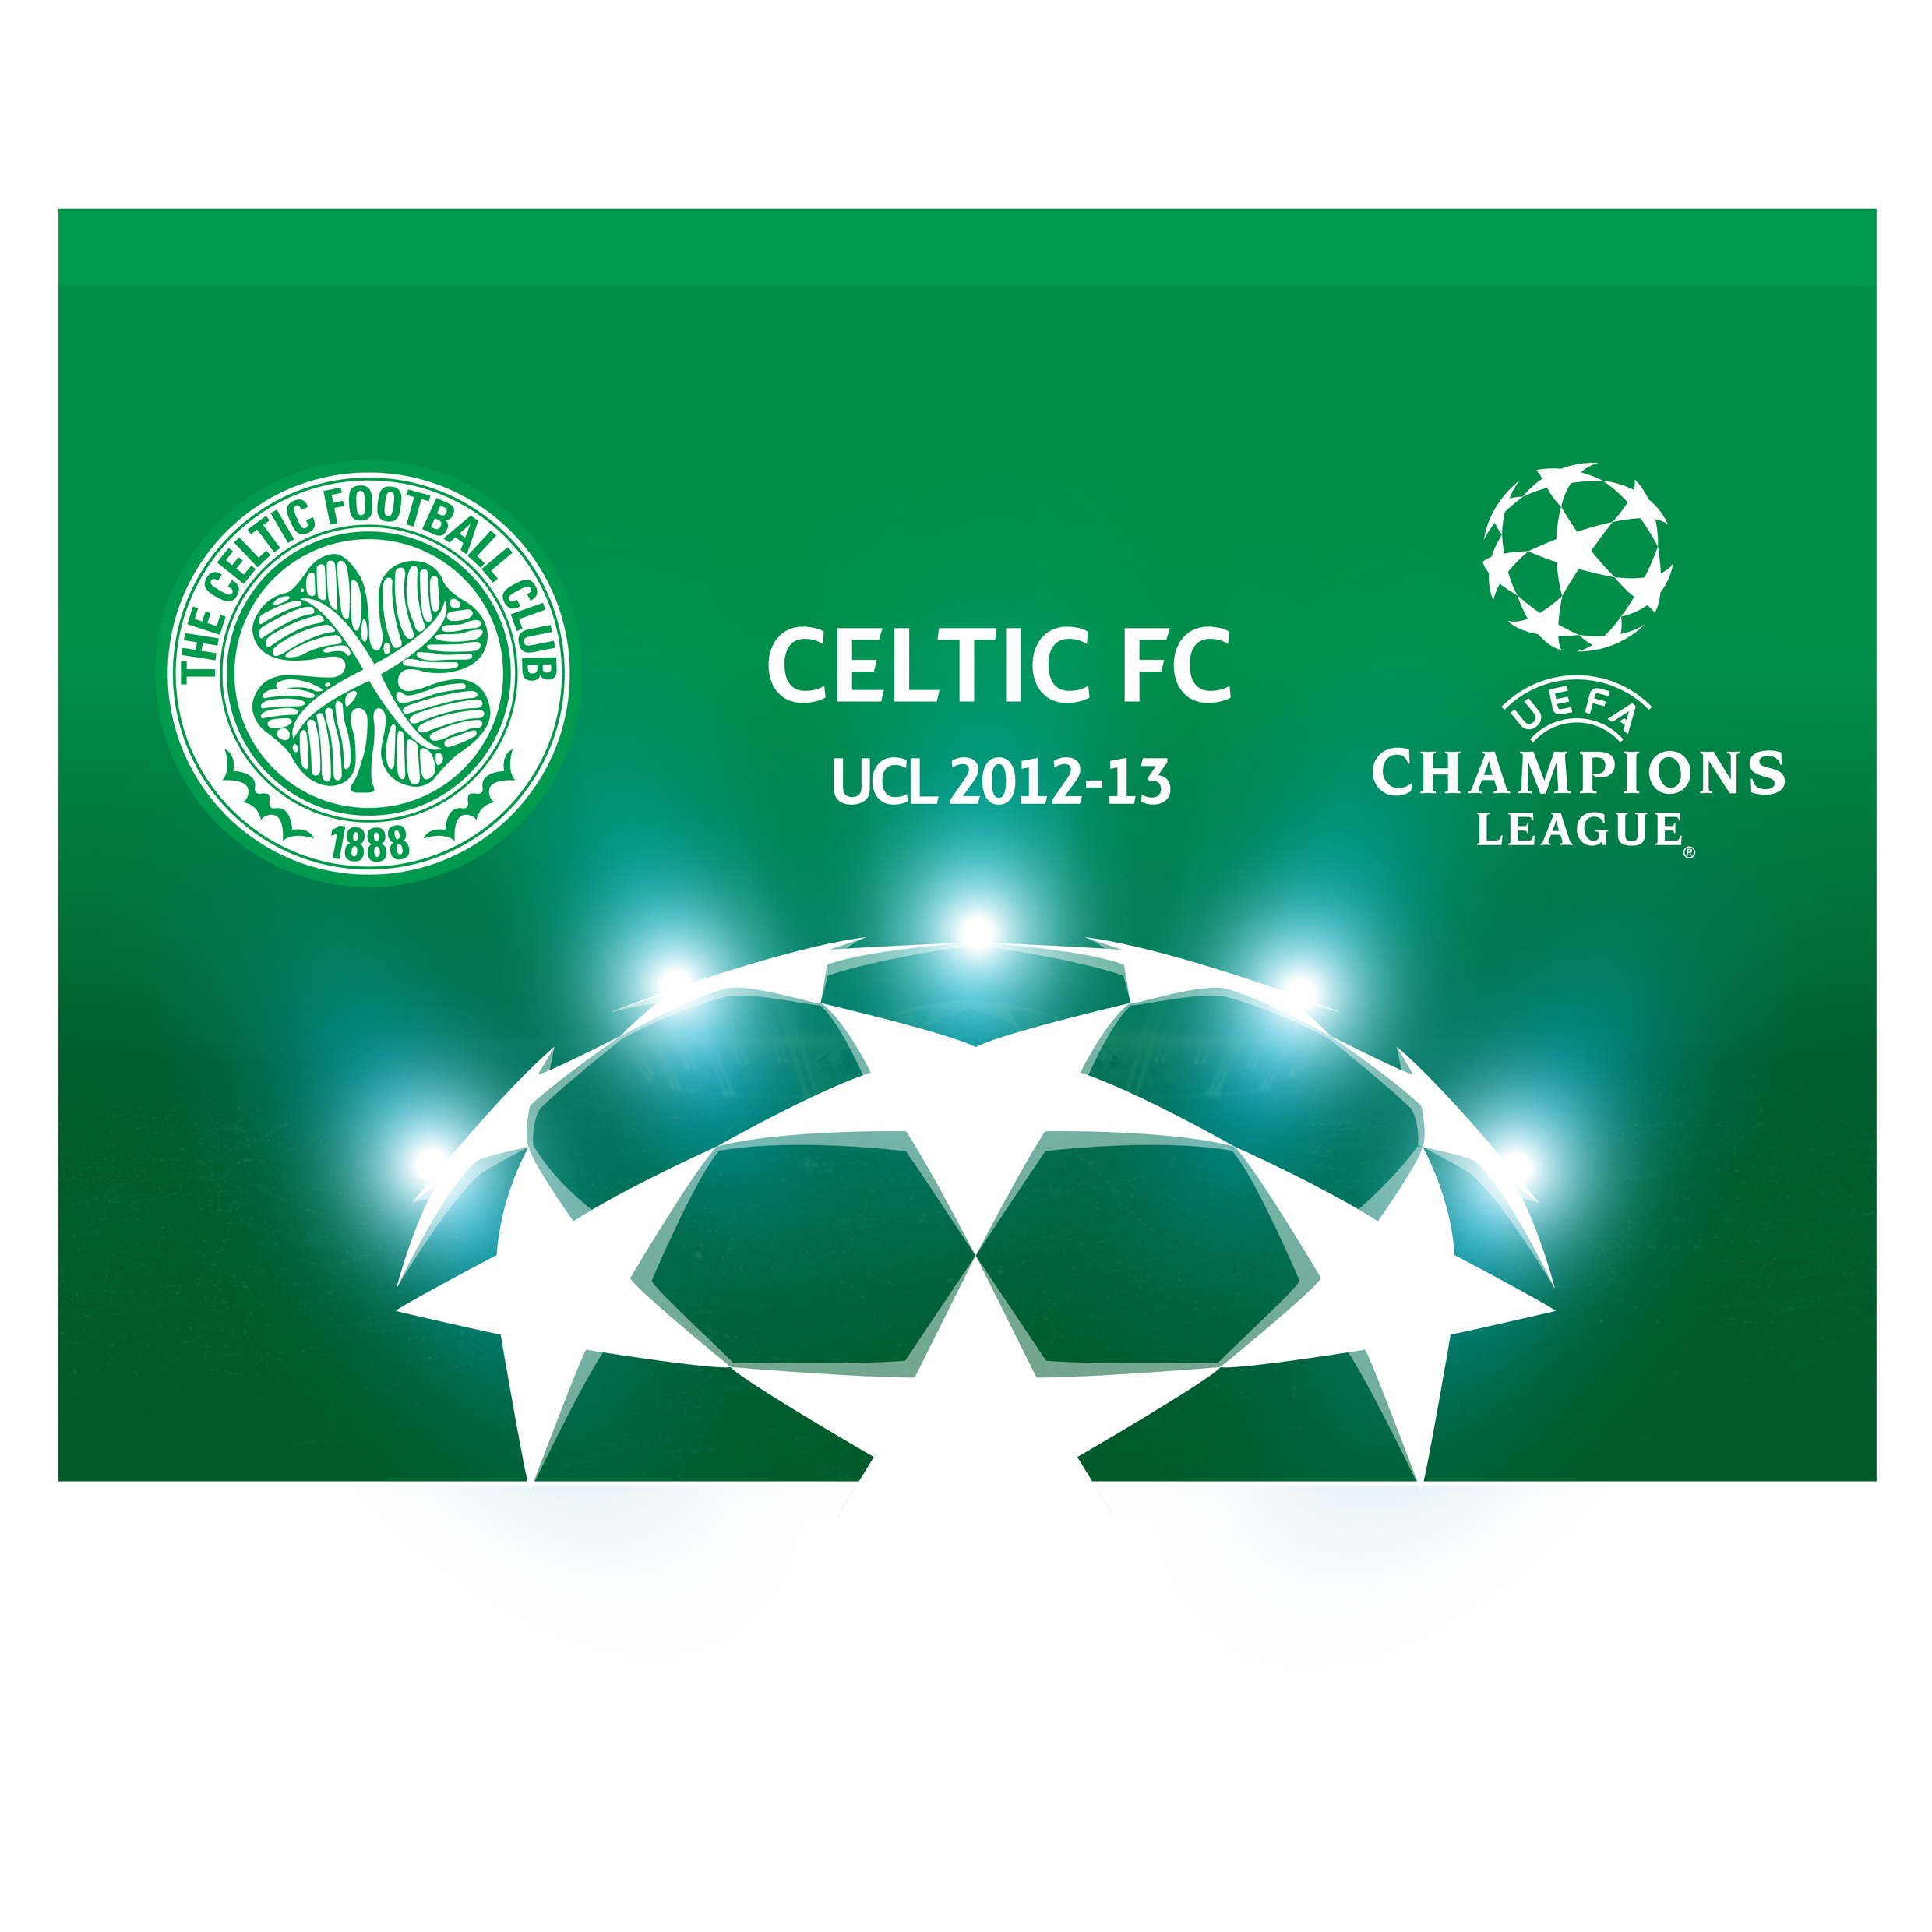 Celtic UEFA Champions League Flag - 96 x 66cm